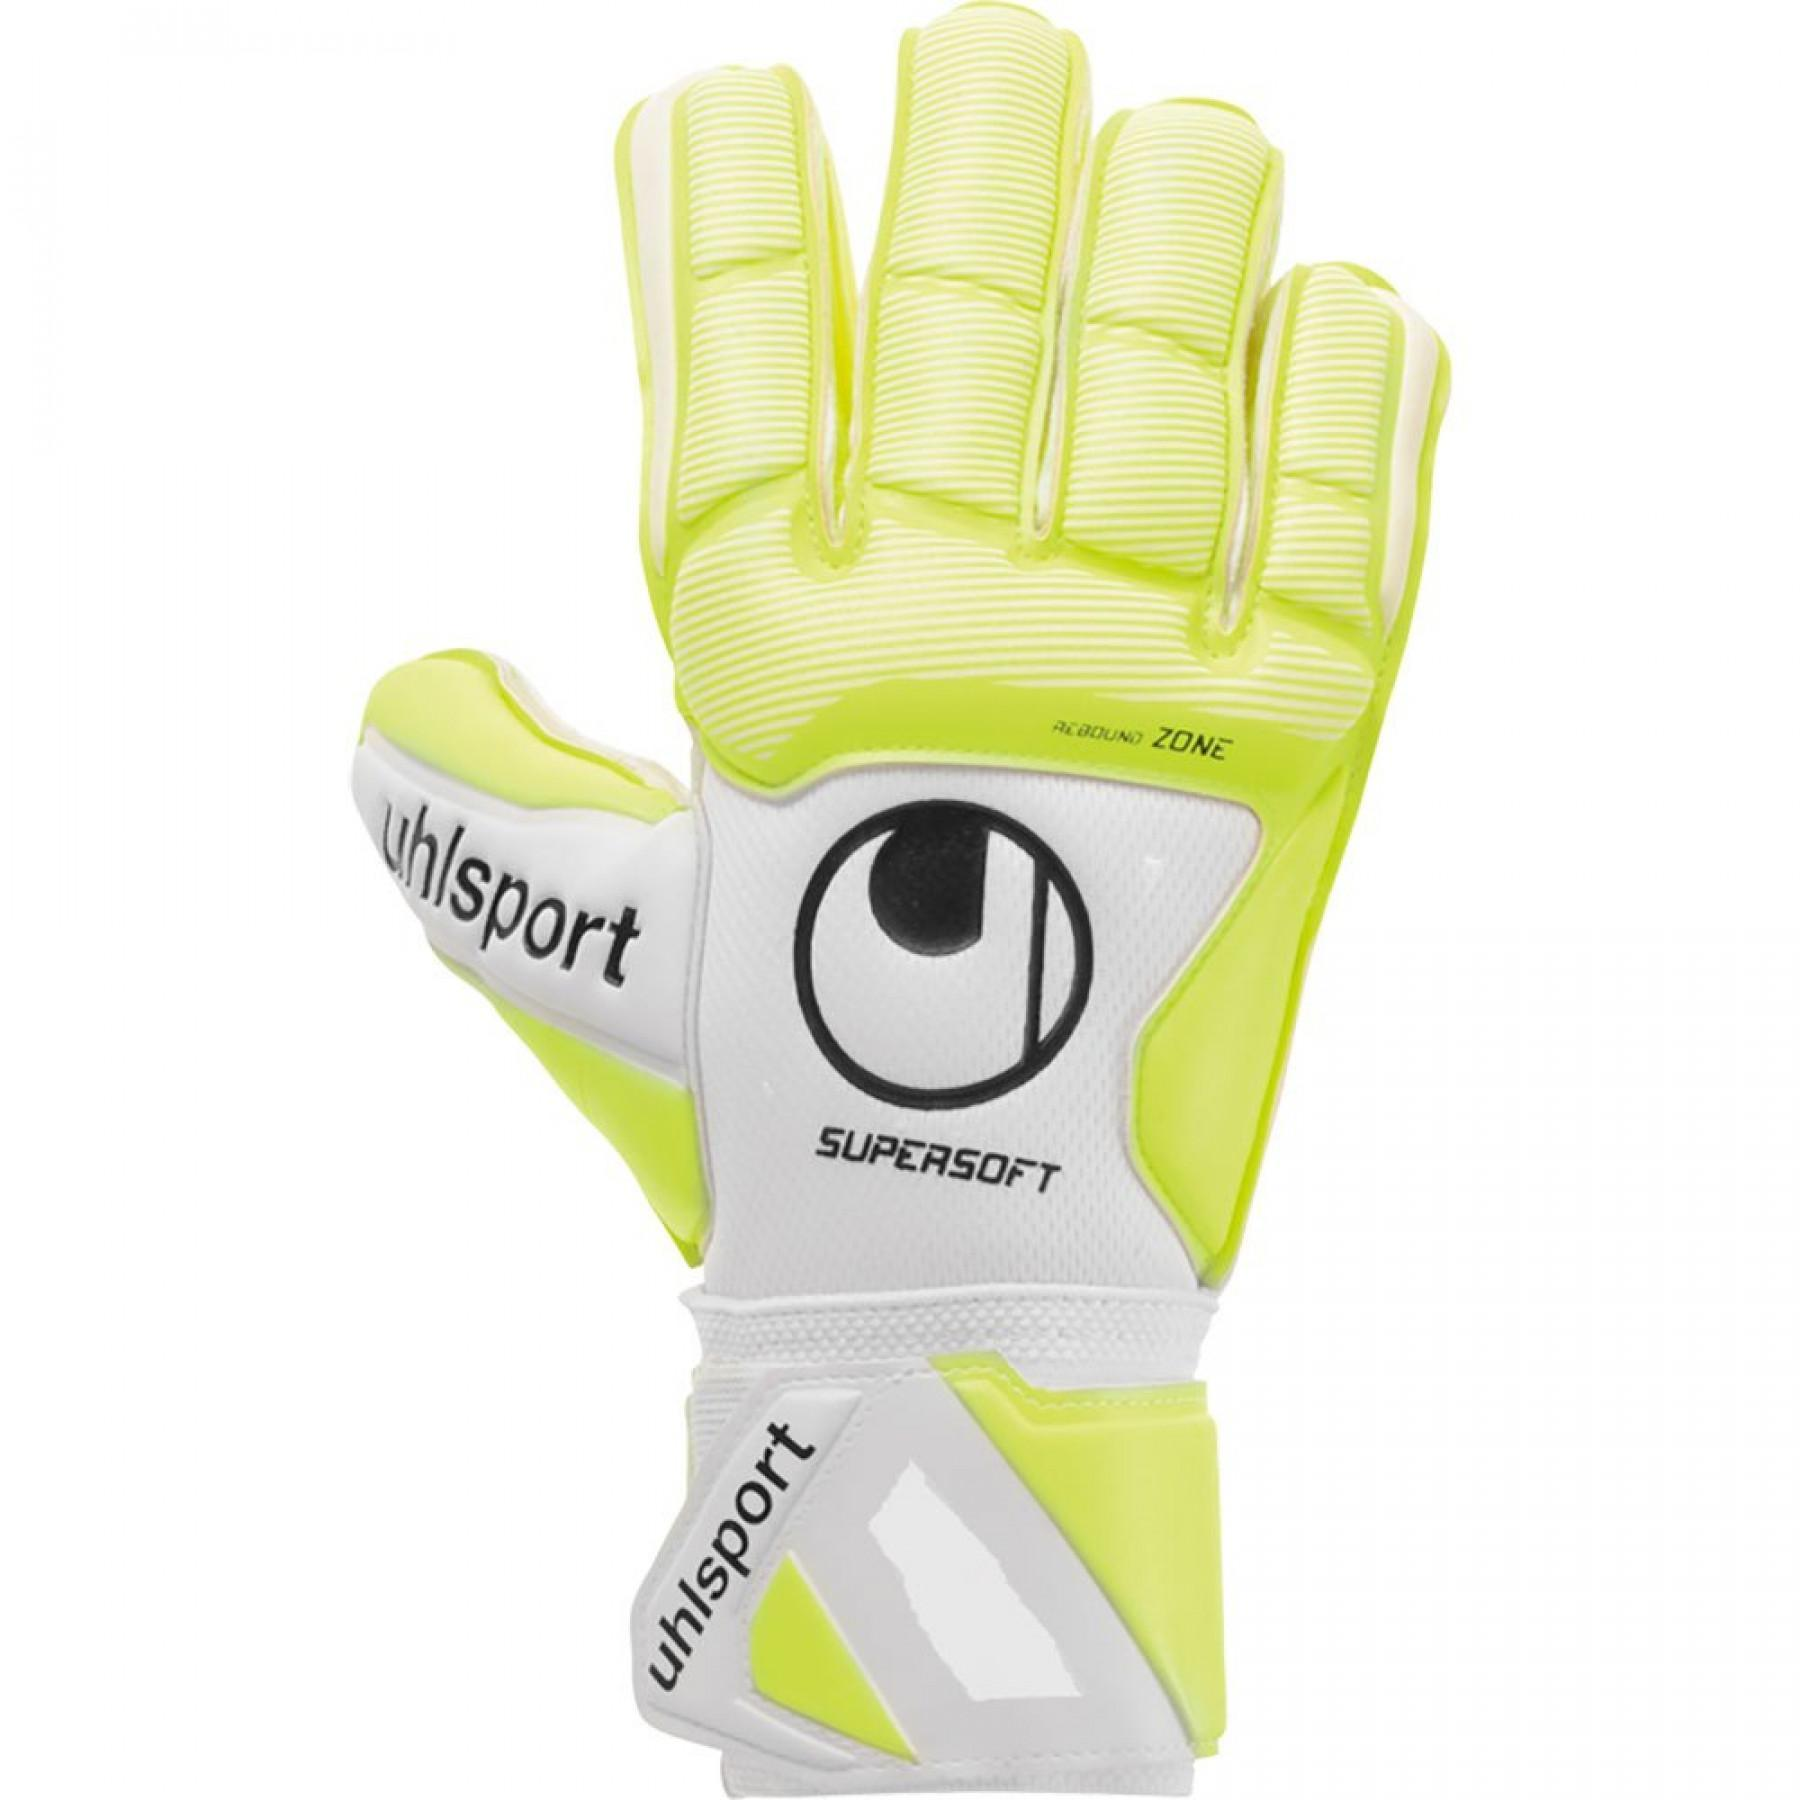 Guantes Uhlsport Pure Alliance Supersoft